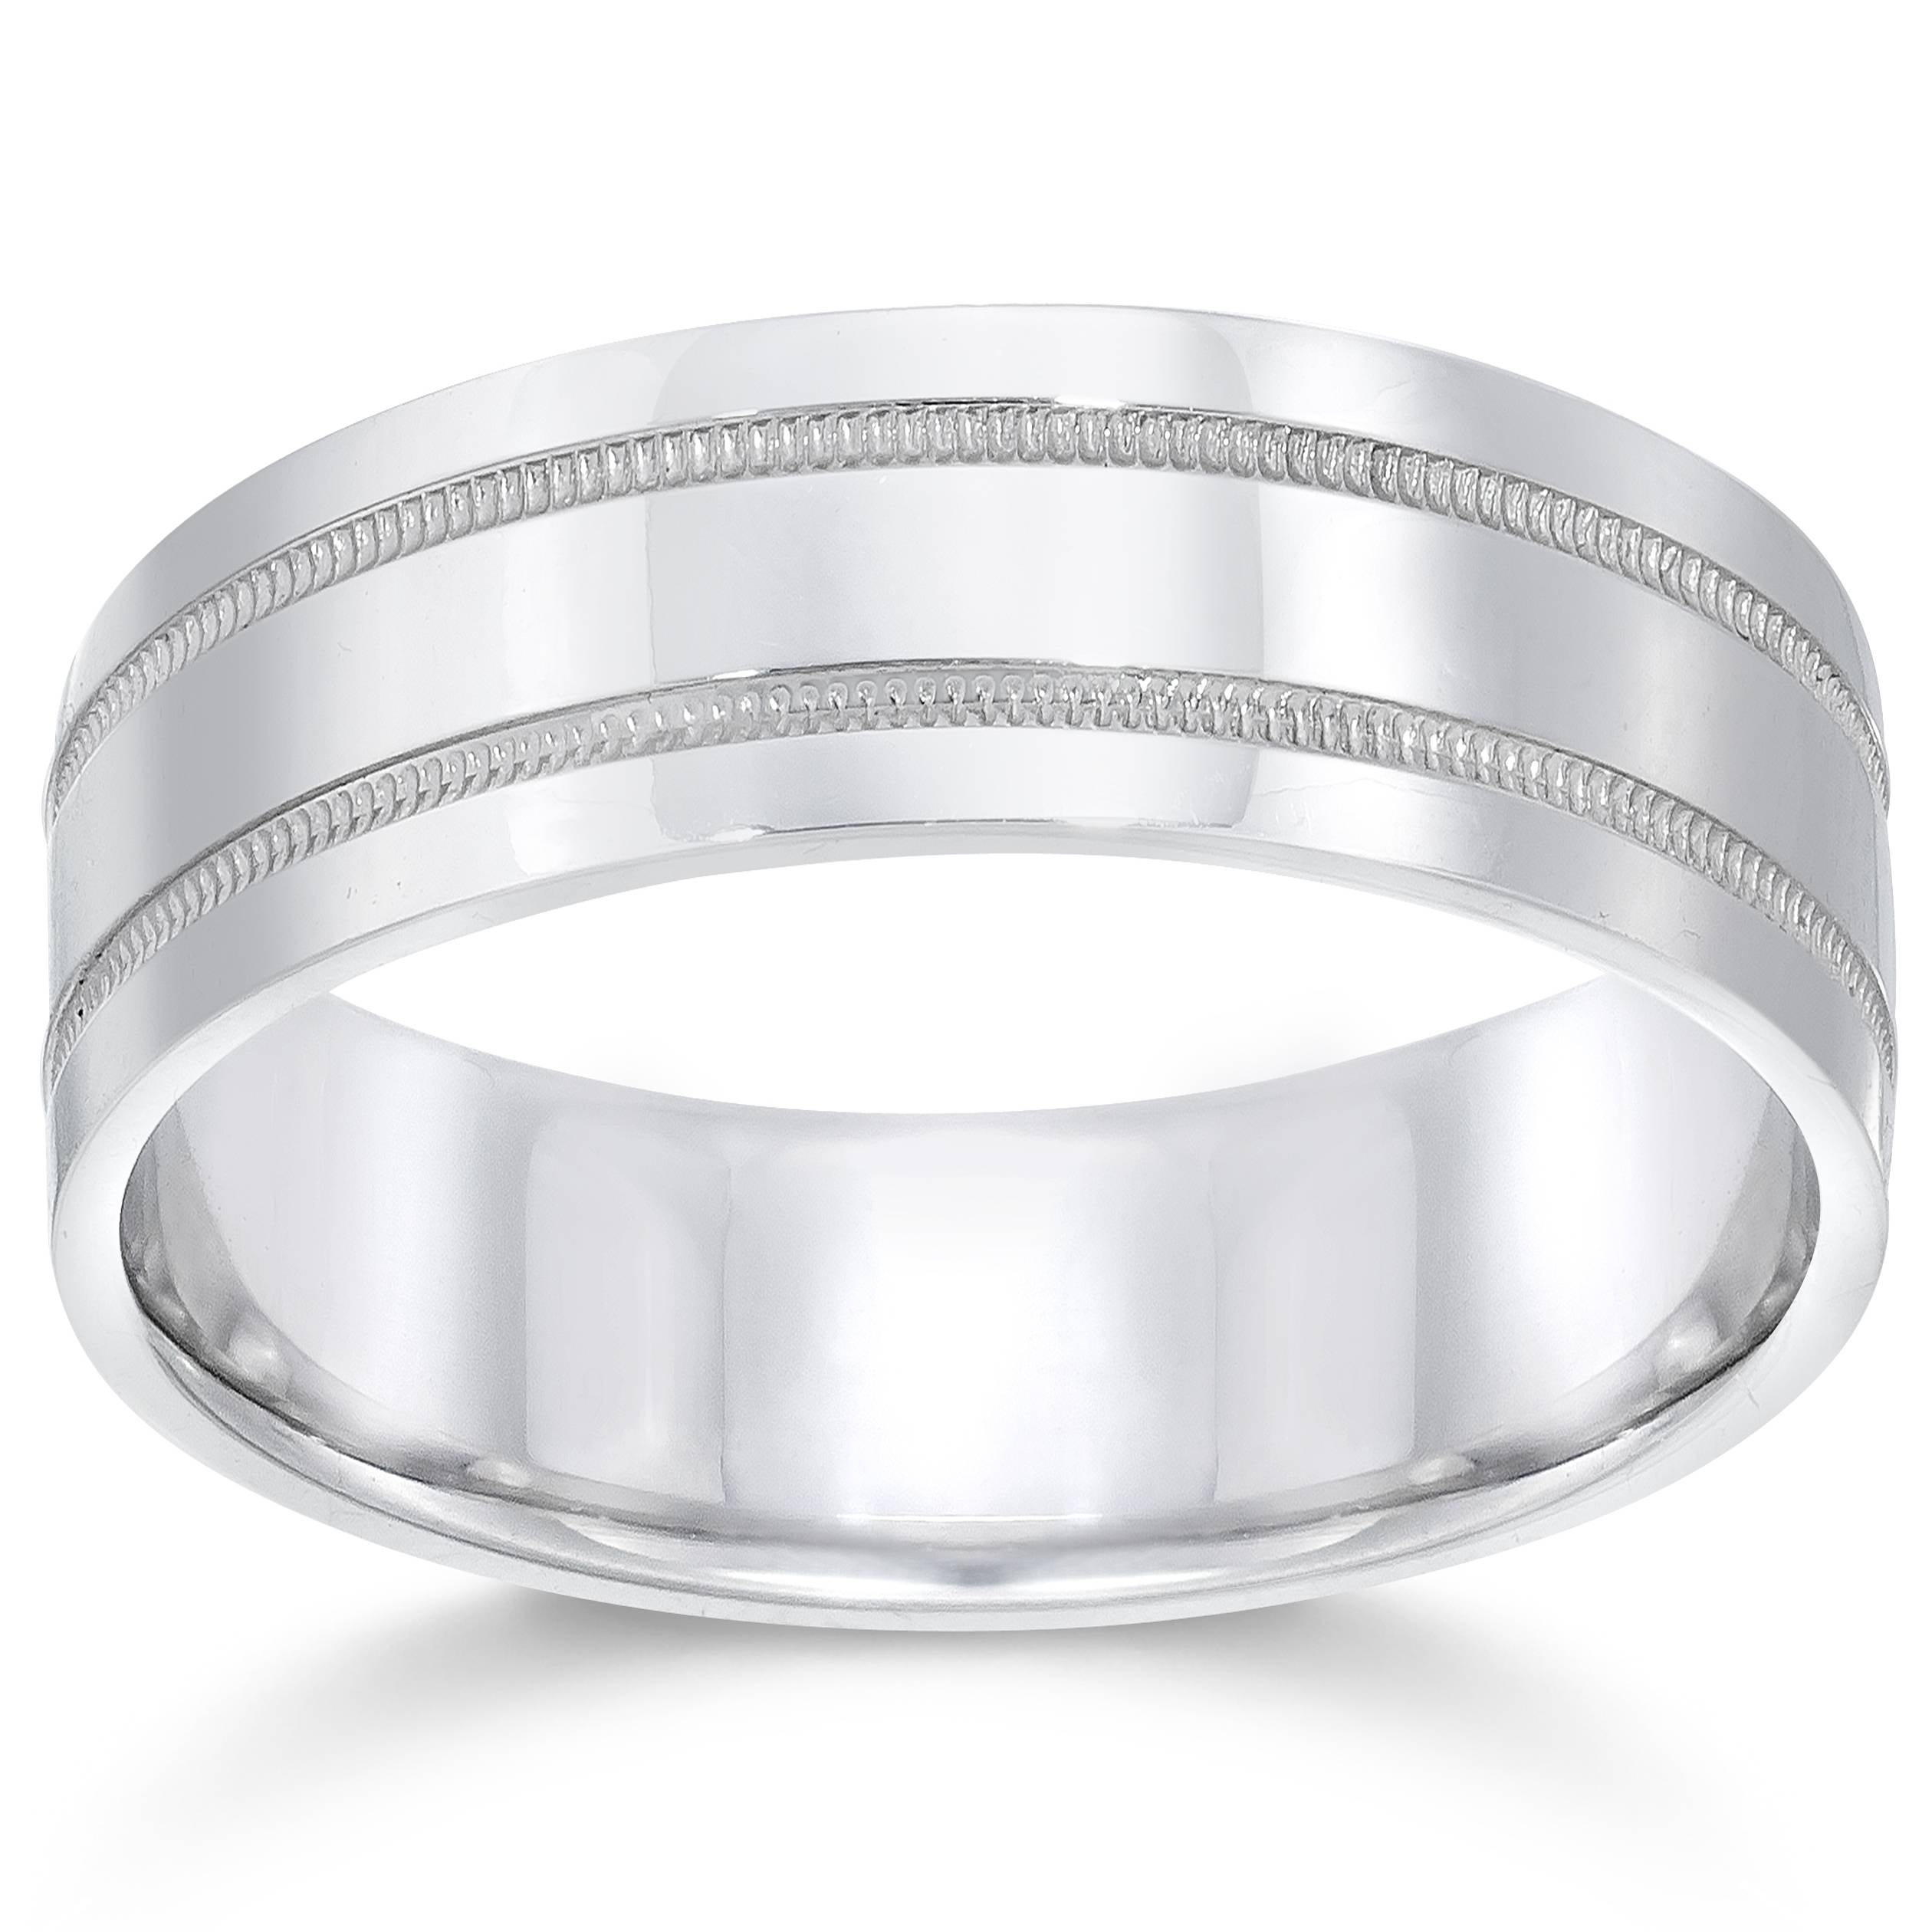 7mm 950 Platinum Comfort Fit Wedding Band New Ring by Pompeii3